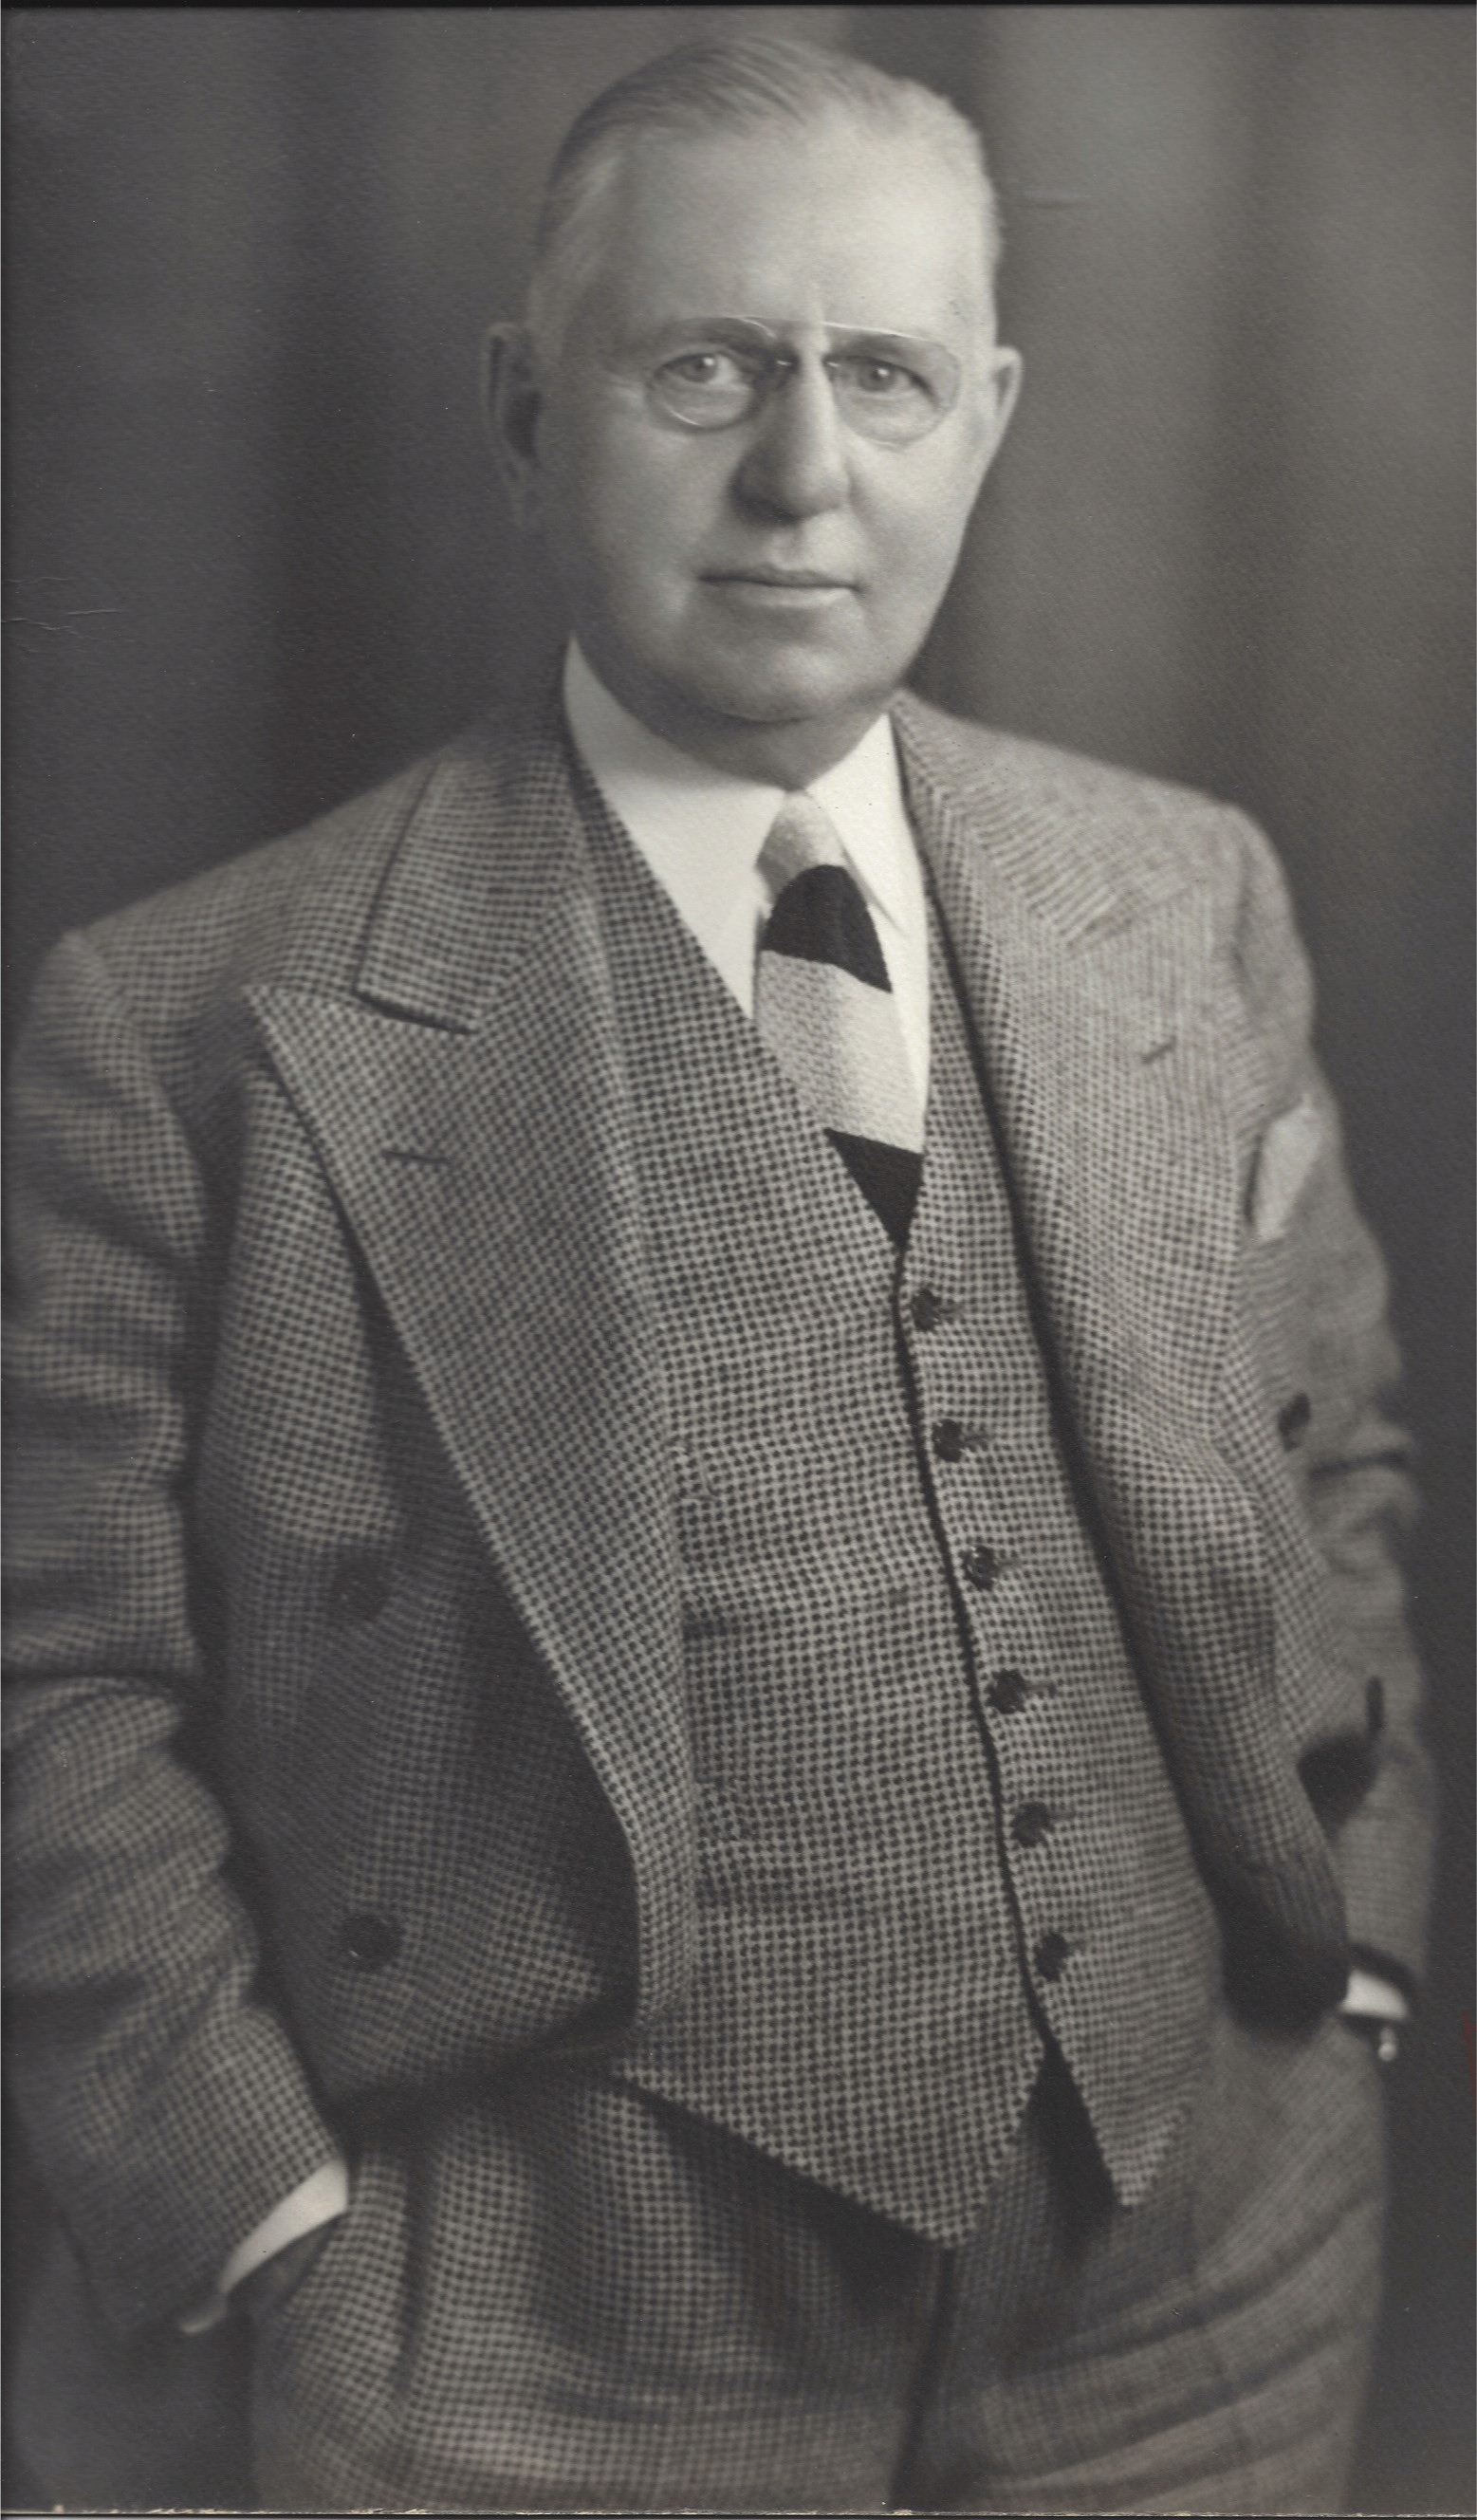 Charles Lawrence Richtmyre